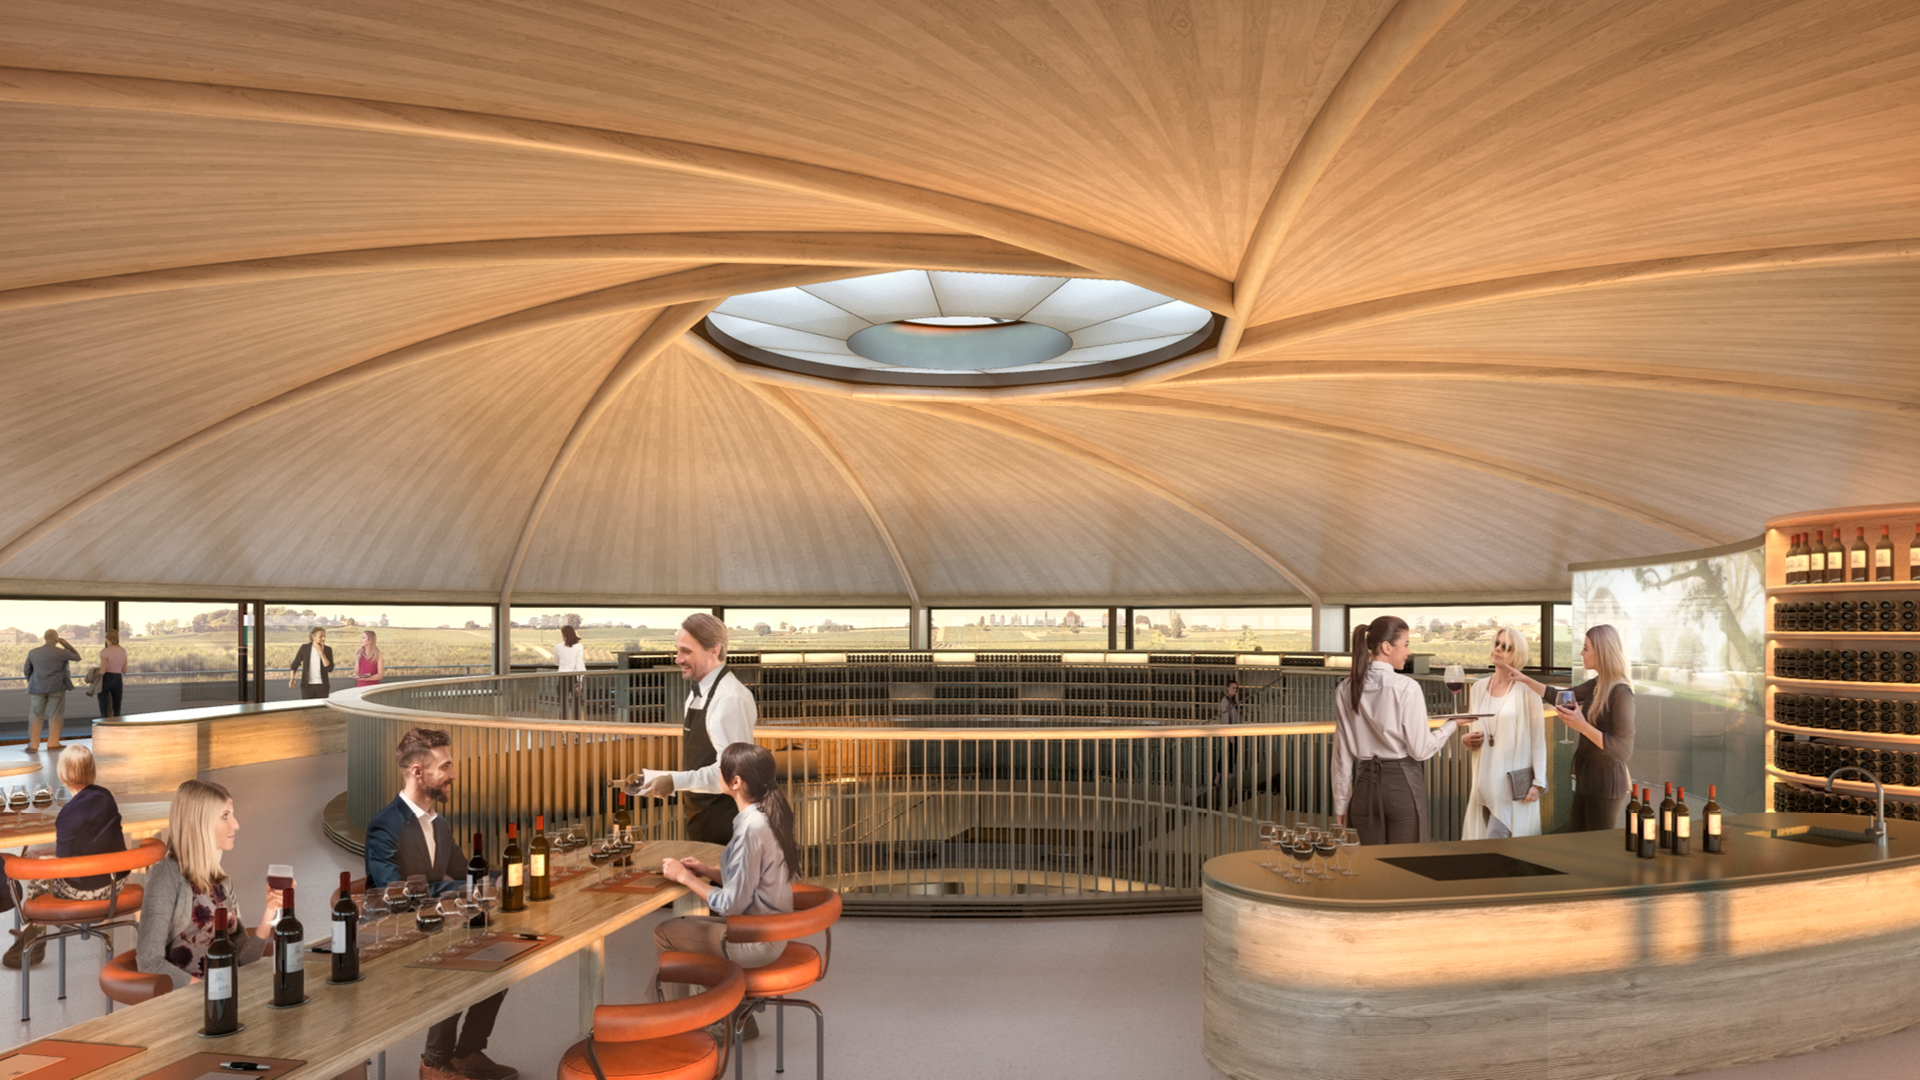 The anticipated Le Dôme winery anchored in its landscape | The Le Dome Winery | Foster + Partners | STIRworld